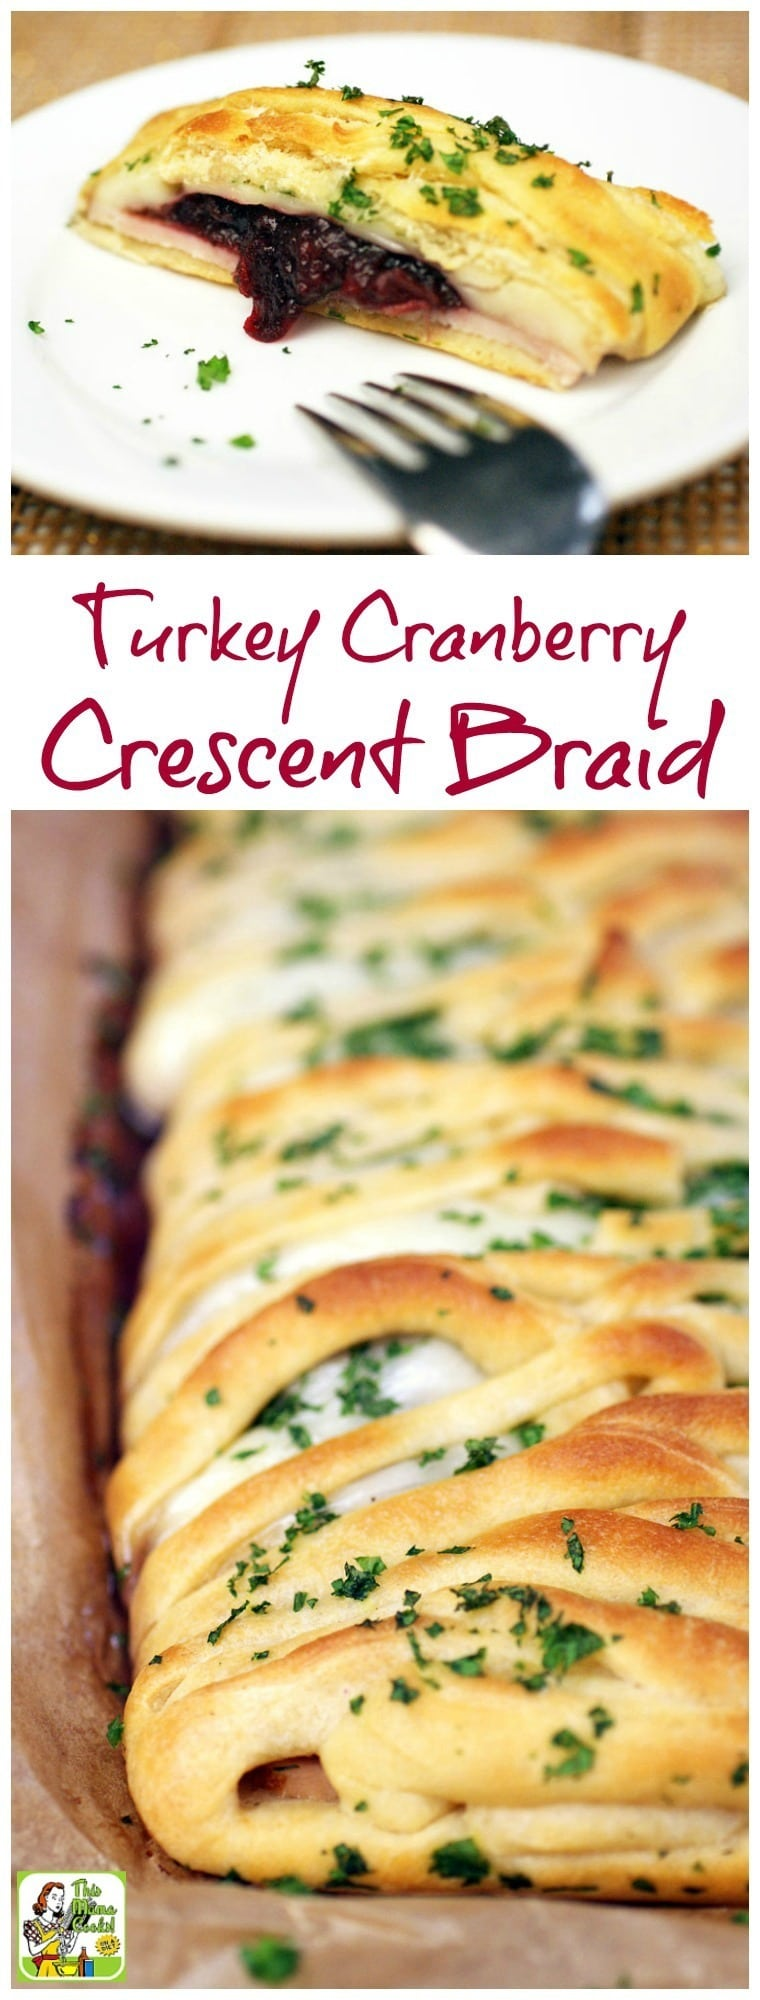 Love crescent roll appetizers? Not only is this Turkey Cranberry Crescent Braid recipe a terrific party appetizer, it's a thrifty way to use up holiday dinner leftovers. This will soon become one of your favorite holiday crescent rolls recipes! #crescentrolls #appetizers #holidayrecipes #leftovers #turkey #cranberry #partyfood #crescentbraid #thanksgiving #christmas